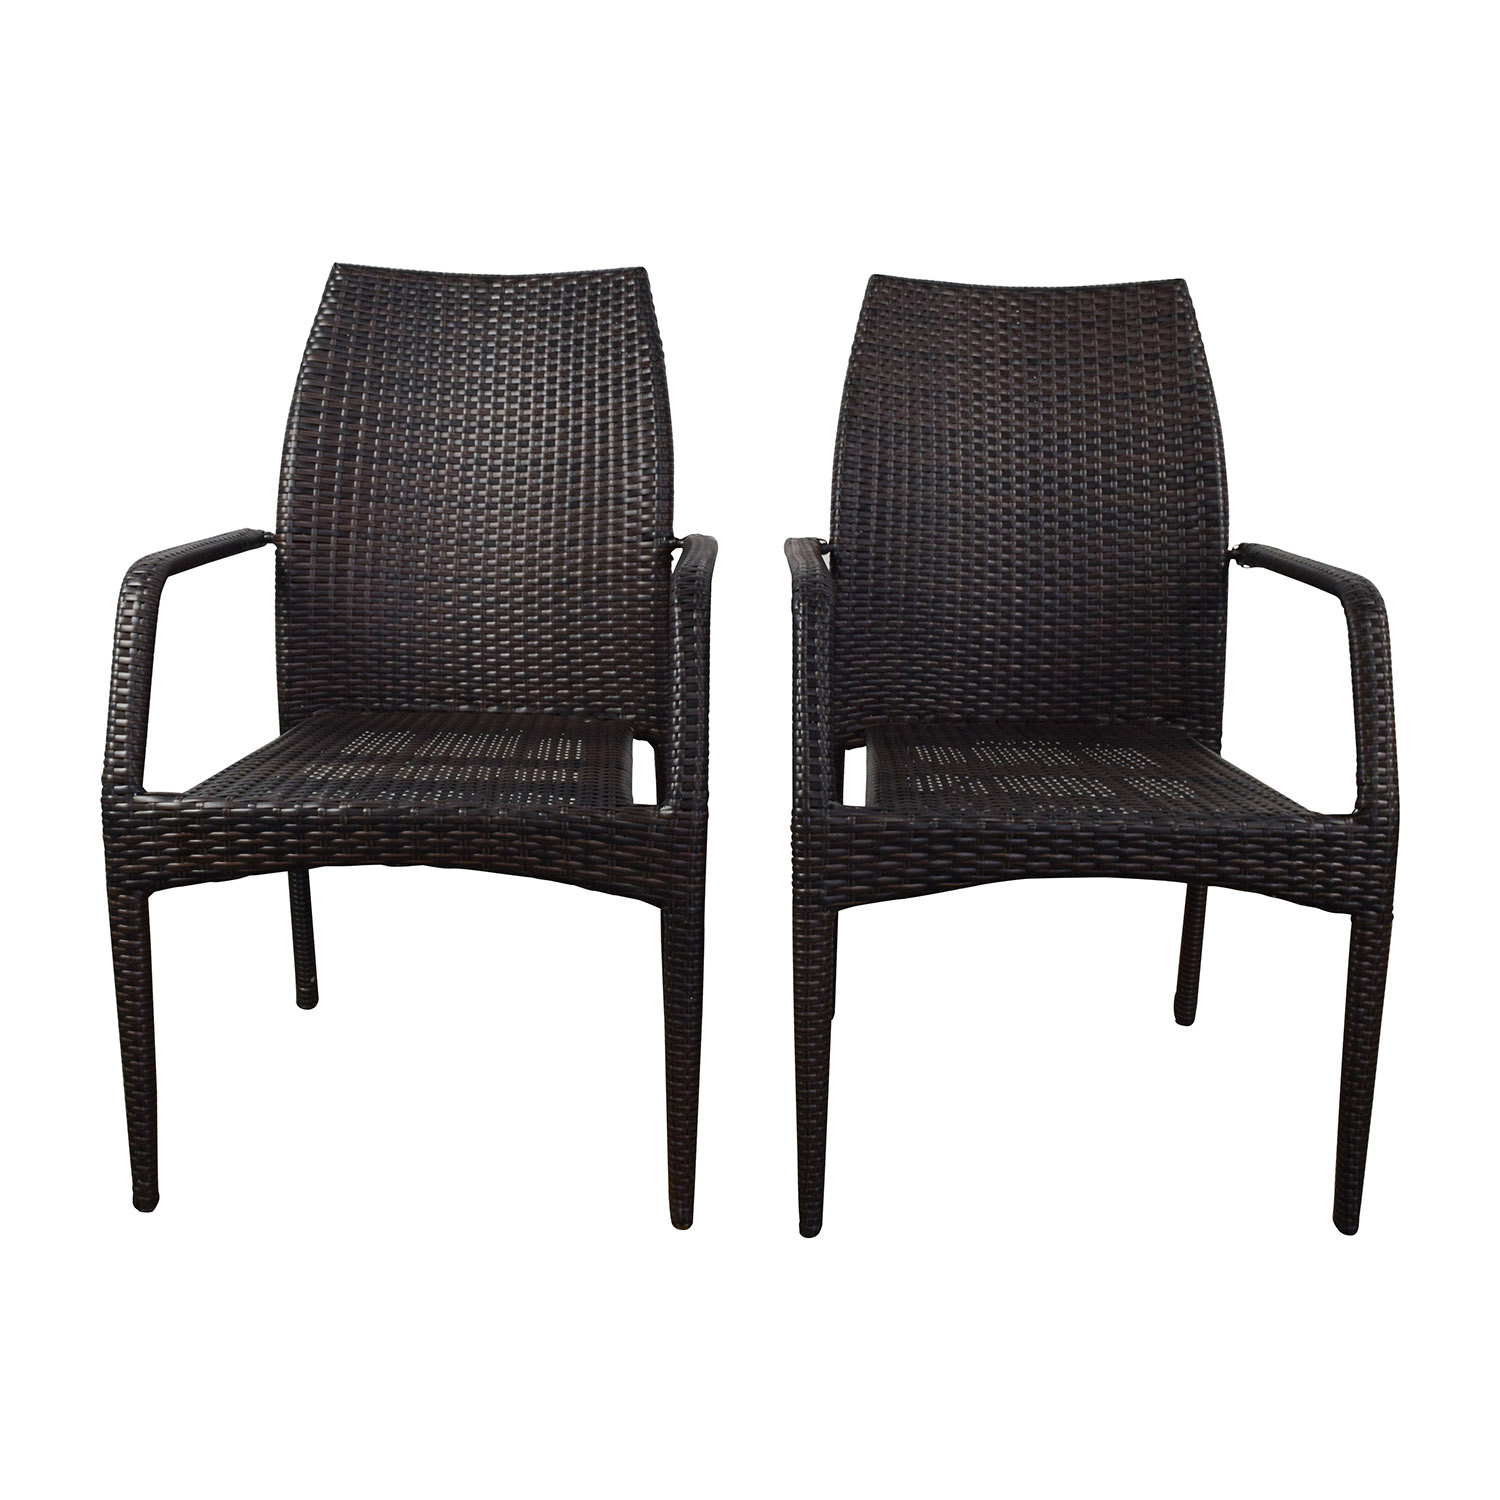 Dark Brown Wicker Outdoor Dining Chairs coupon